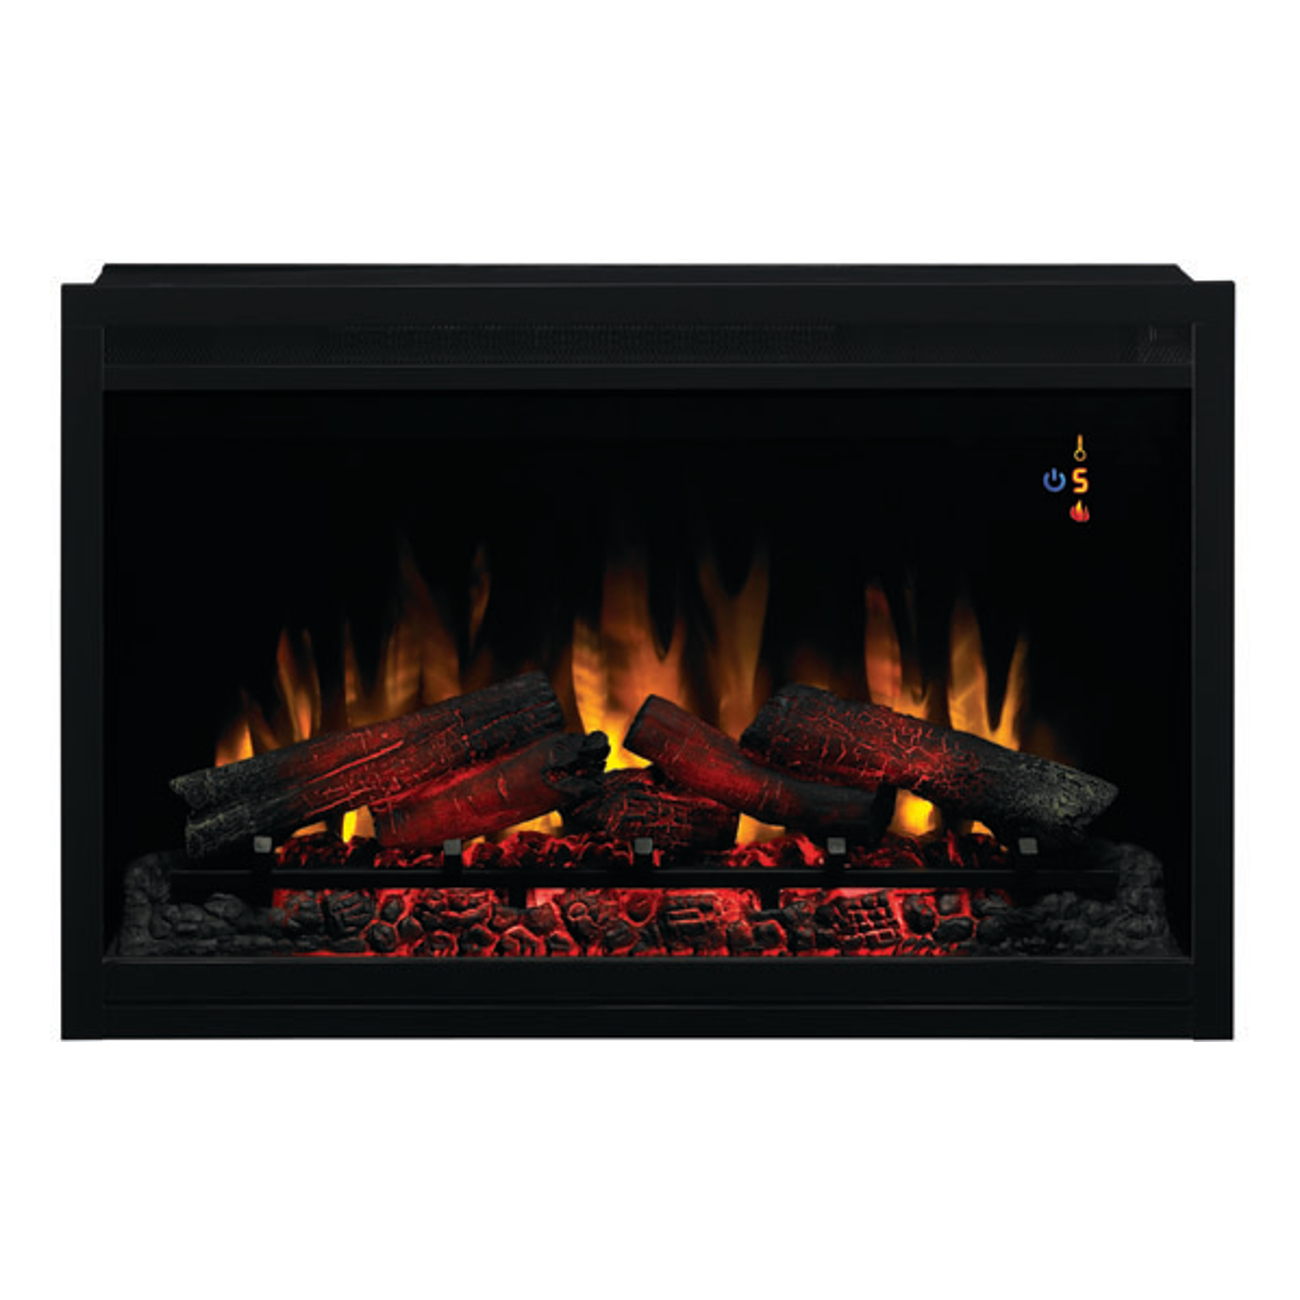 classic-flame-36-inch-36EB110-GRT-120V-traditional-builders-box-electric-fireplace